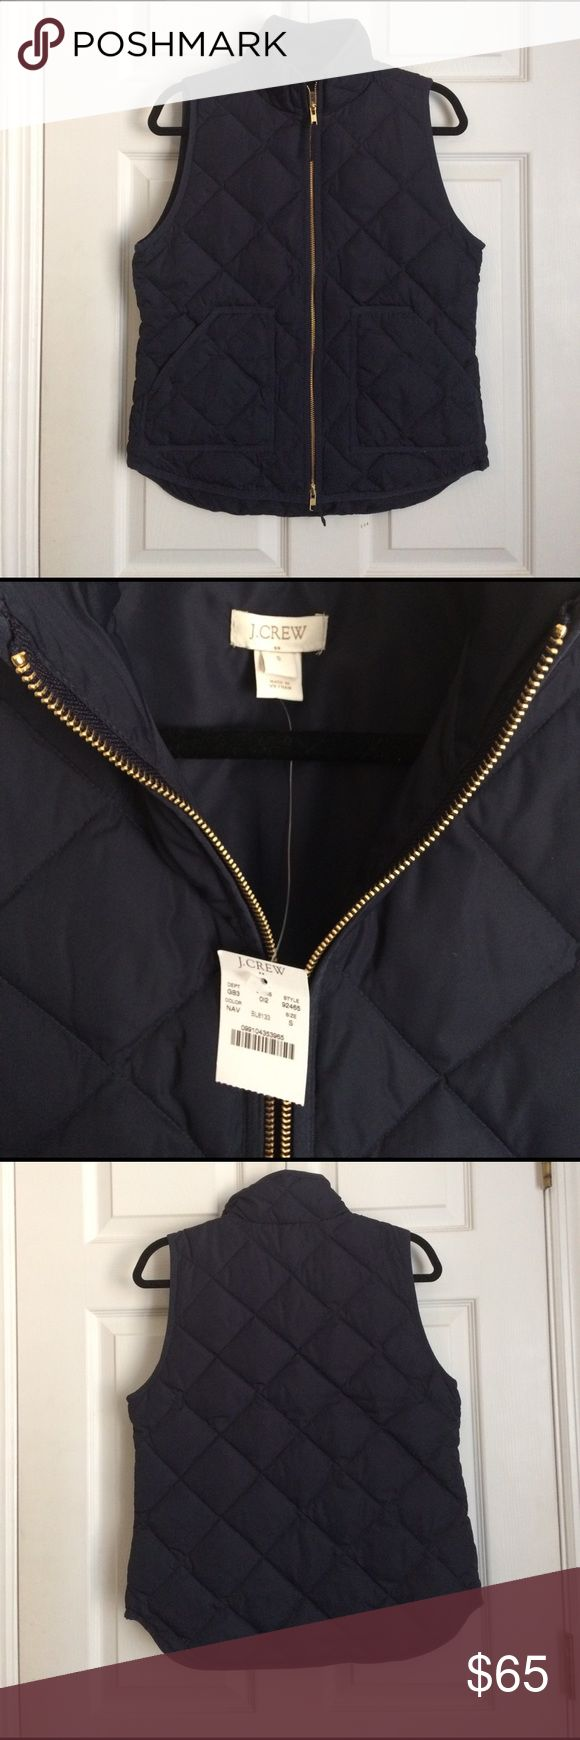 NWT J Crew Factory Quilted Vest Navy Small NWT J Crew Factory Quilted Vest Navy Small J. Crew Factory Jackets & Coats Vests